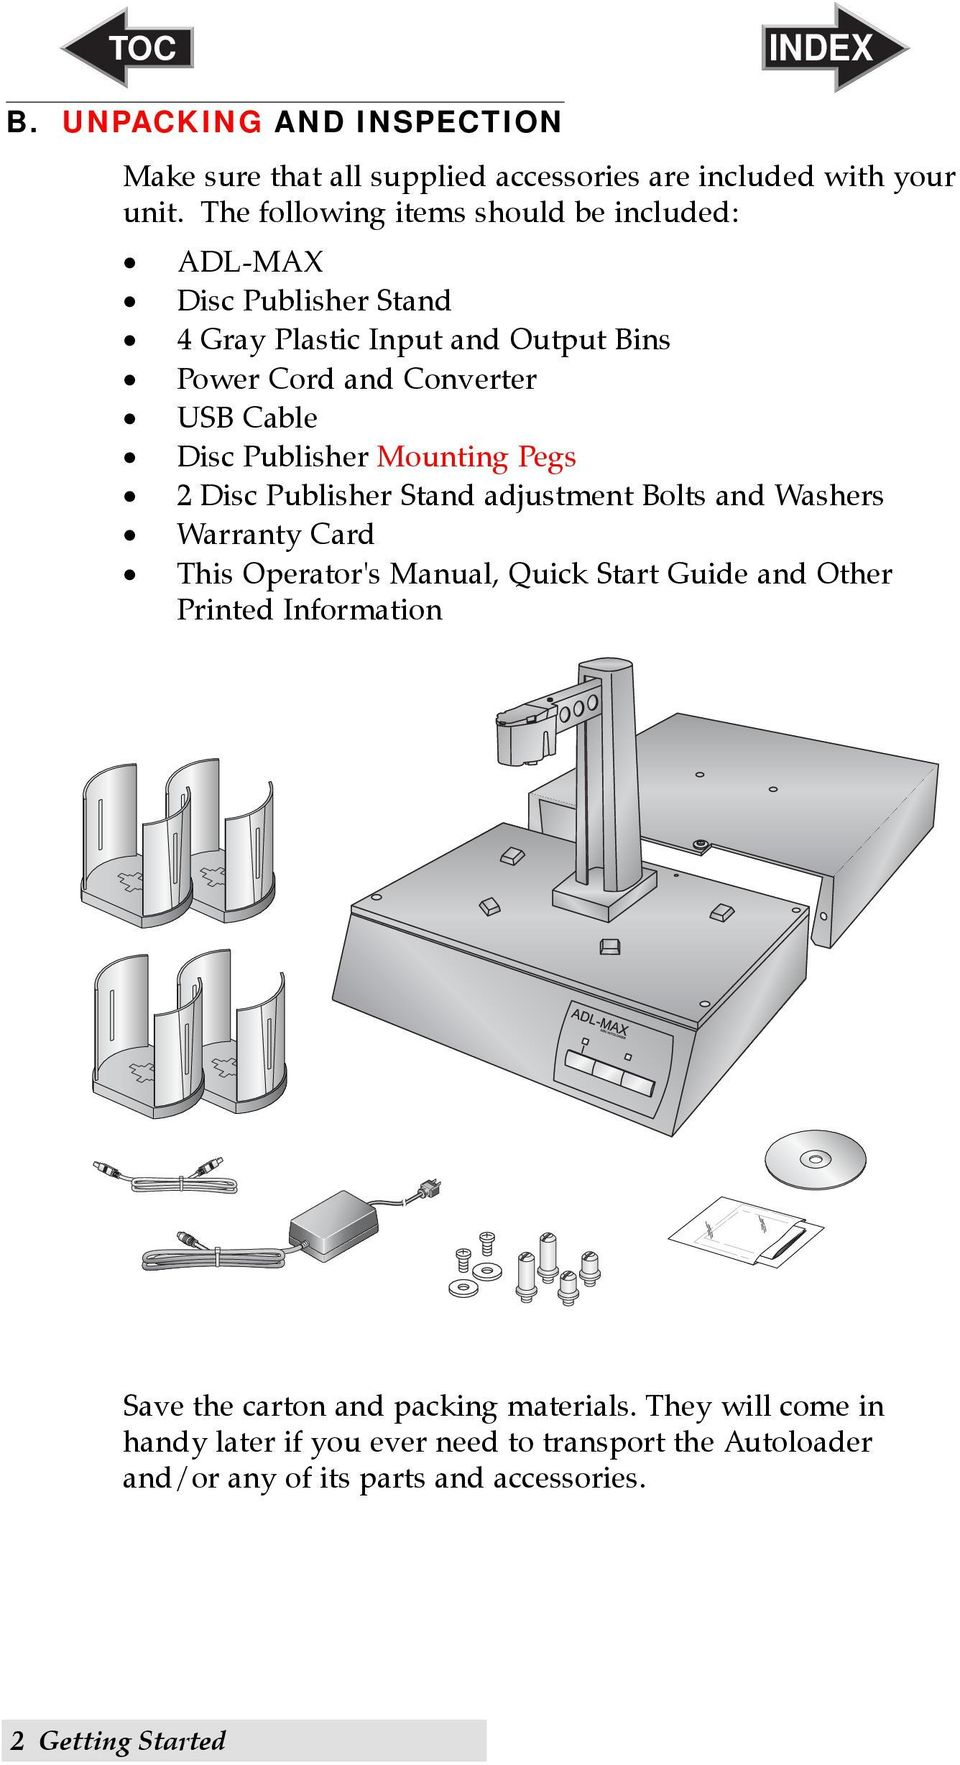 Disc Publisher Mounting Pegs 2 Disc Publisher Stand adjustment Bolts and Washers Warranty Card This Operator's Manual, Quick Start Guide and